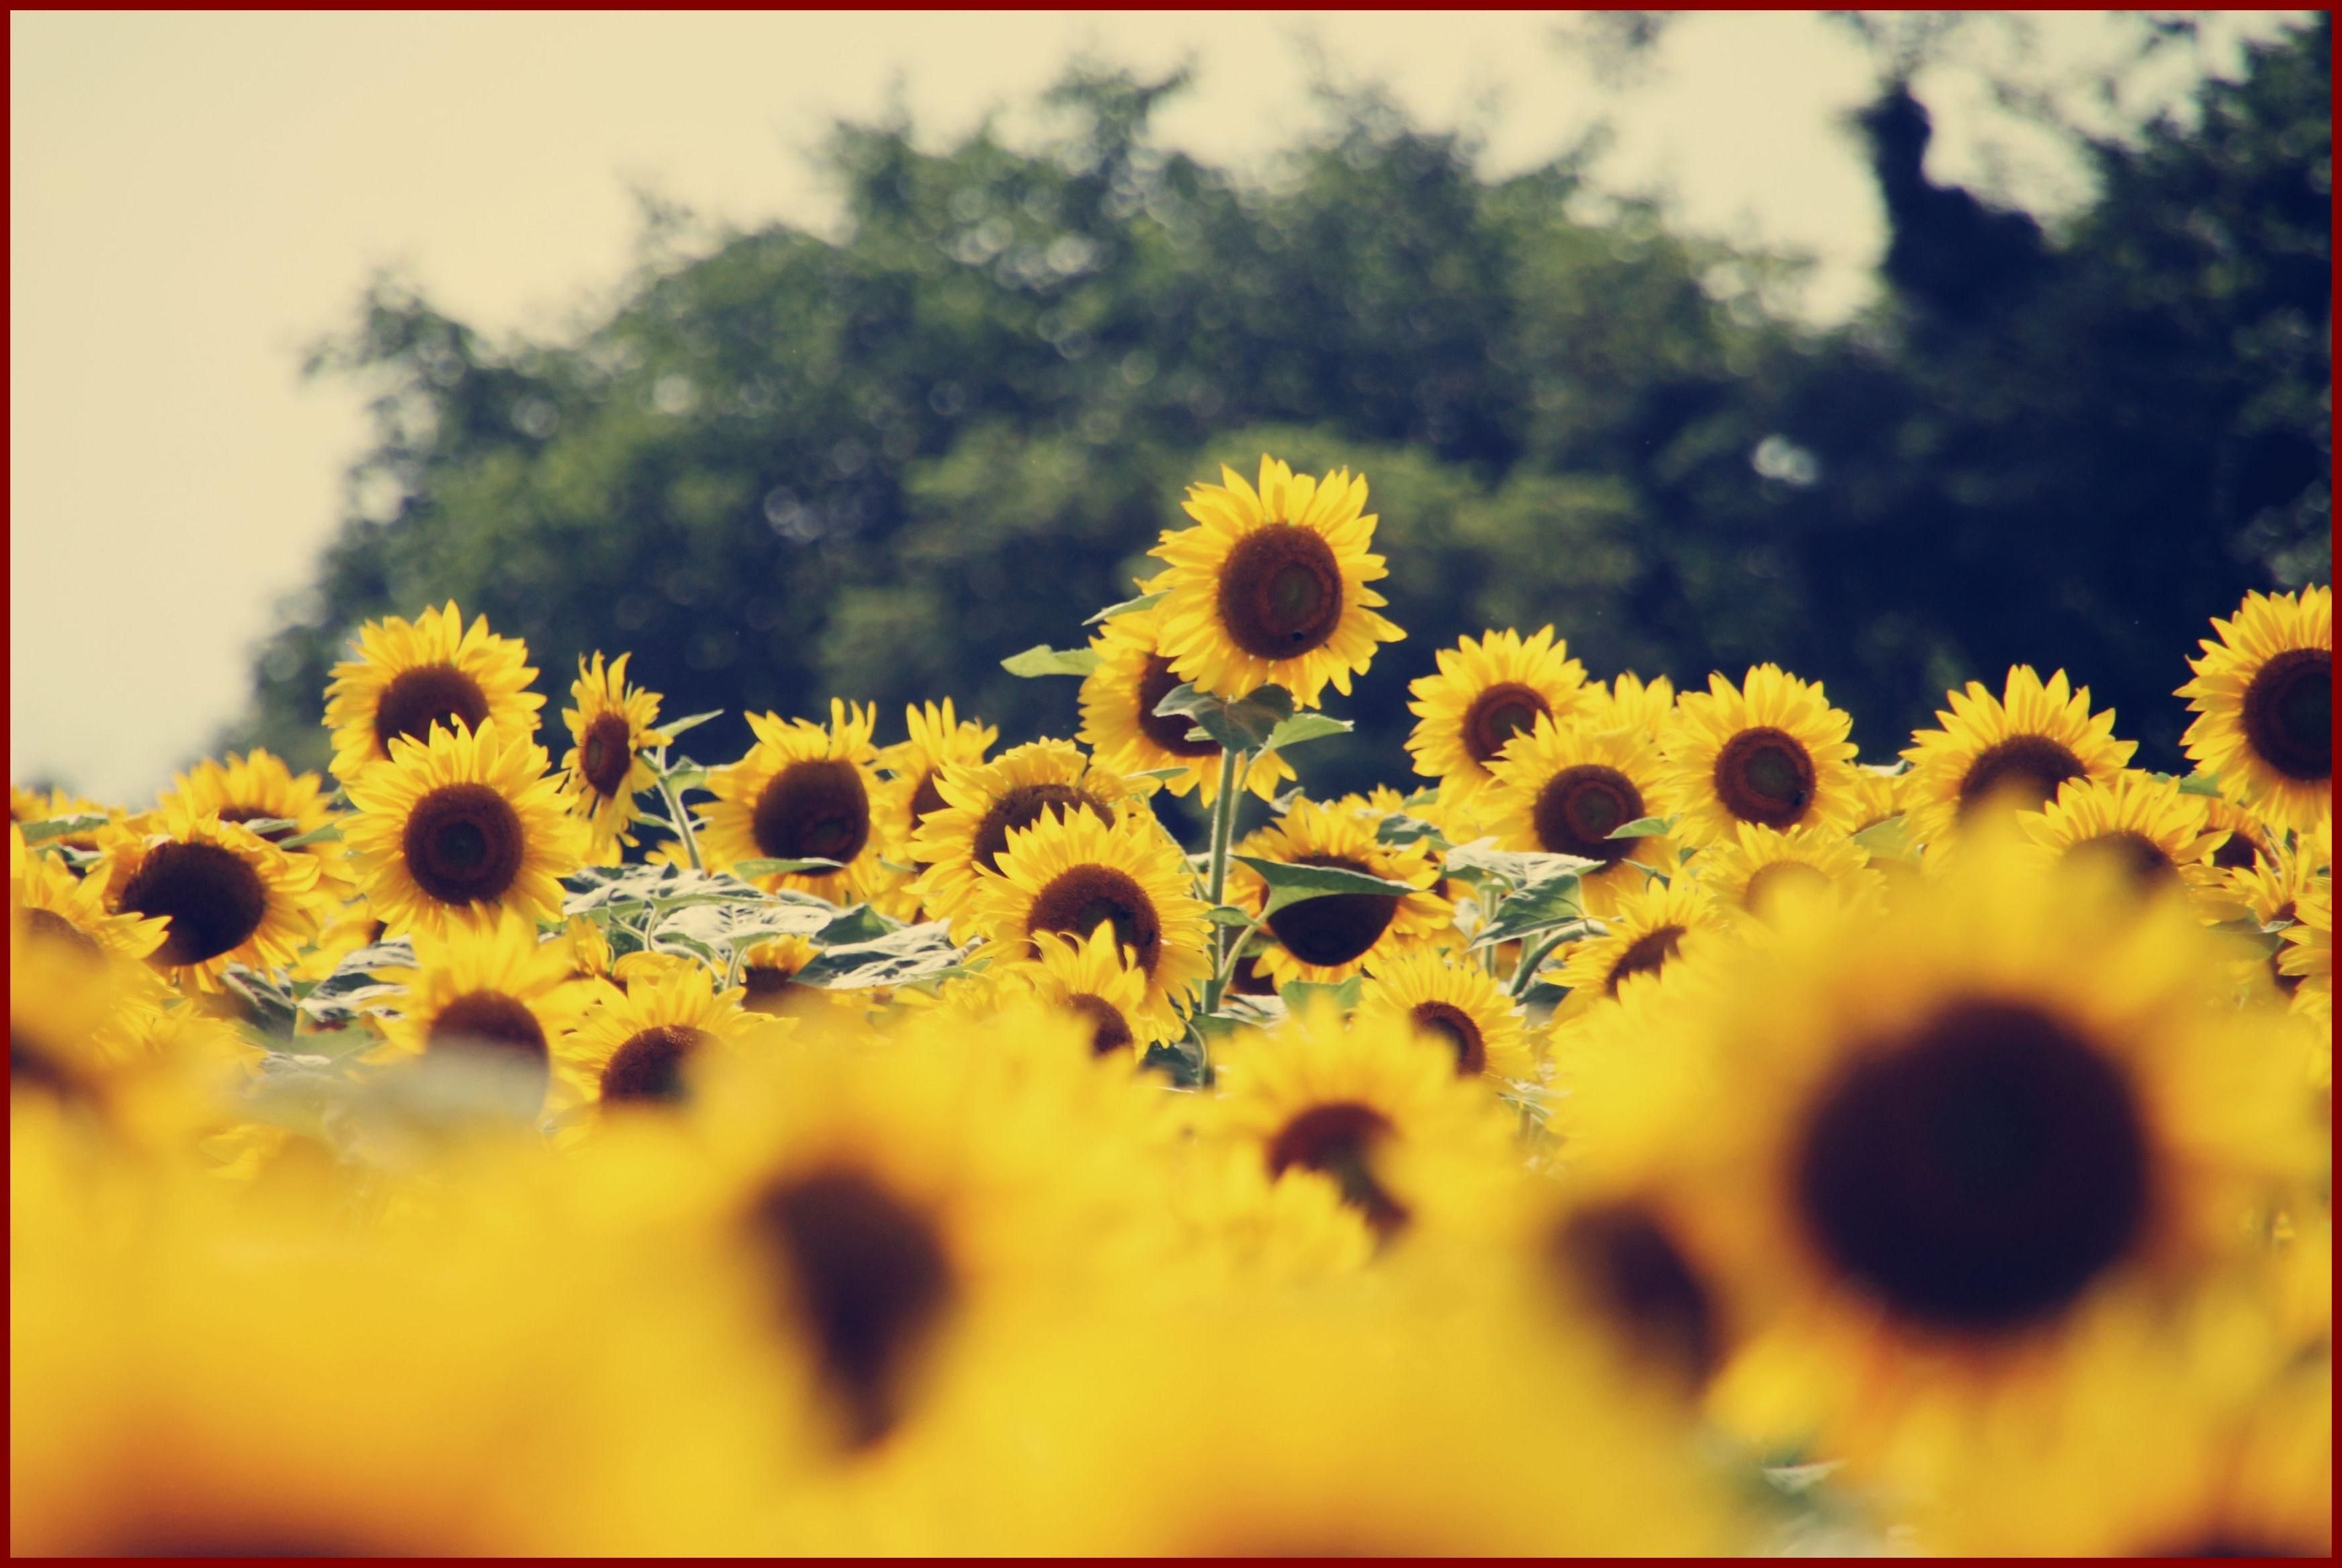 Art Laptop Wallpaper Google Search Sunflower Images Sunflower Pictures Sunflowers Background